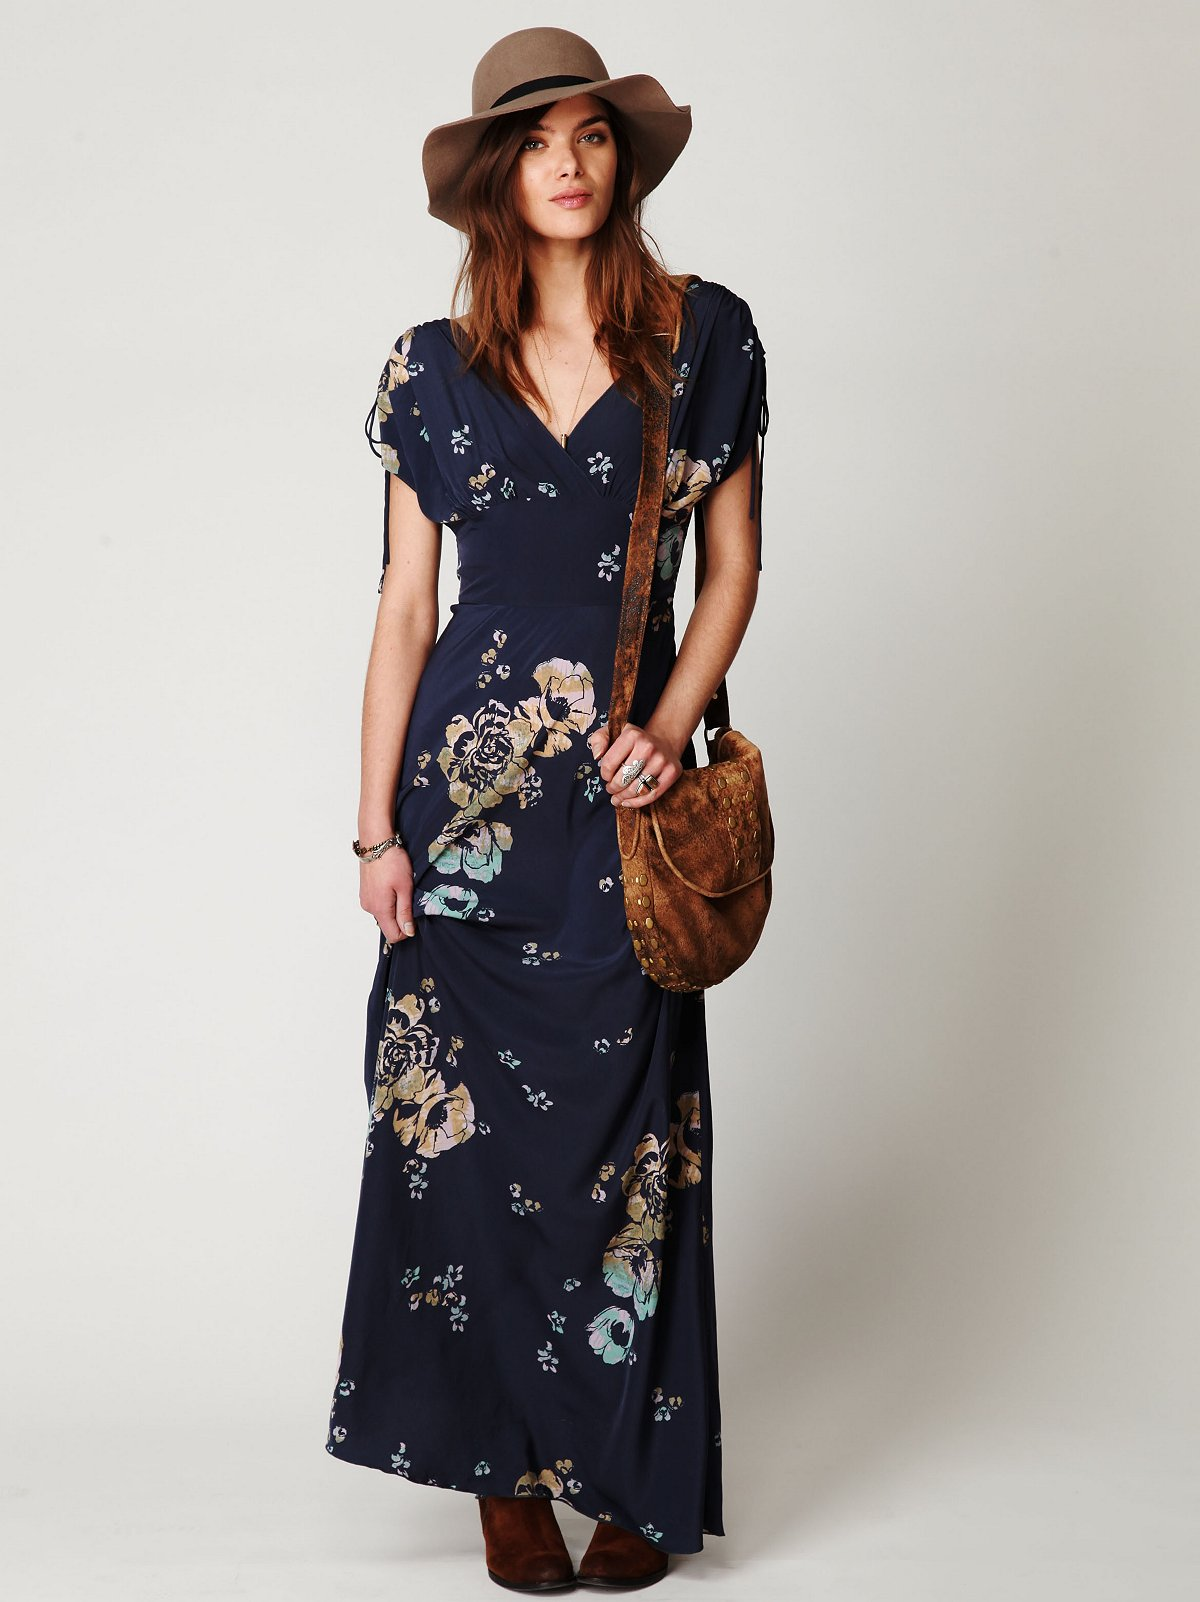 Stardust Short Sleeve Maxi Dress at Free People Clothing Boutique